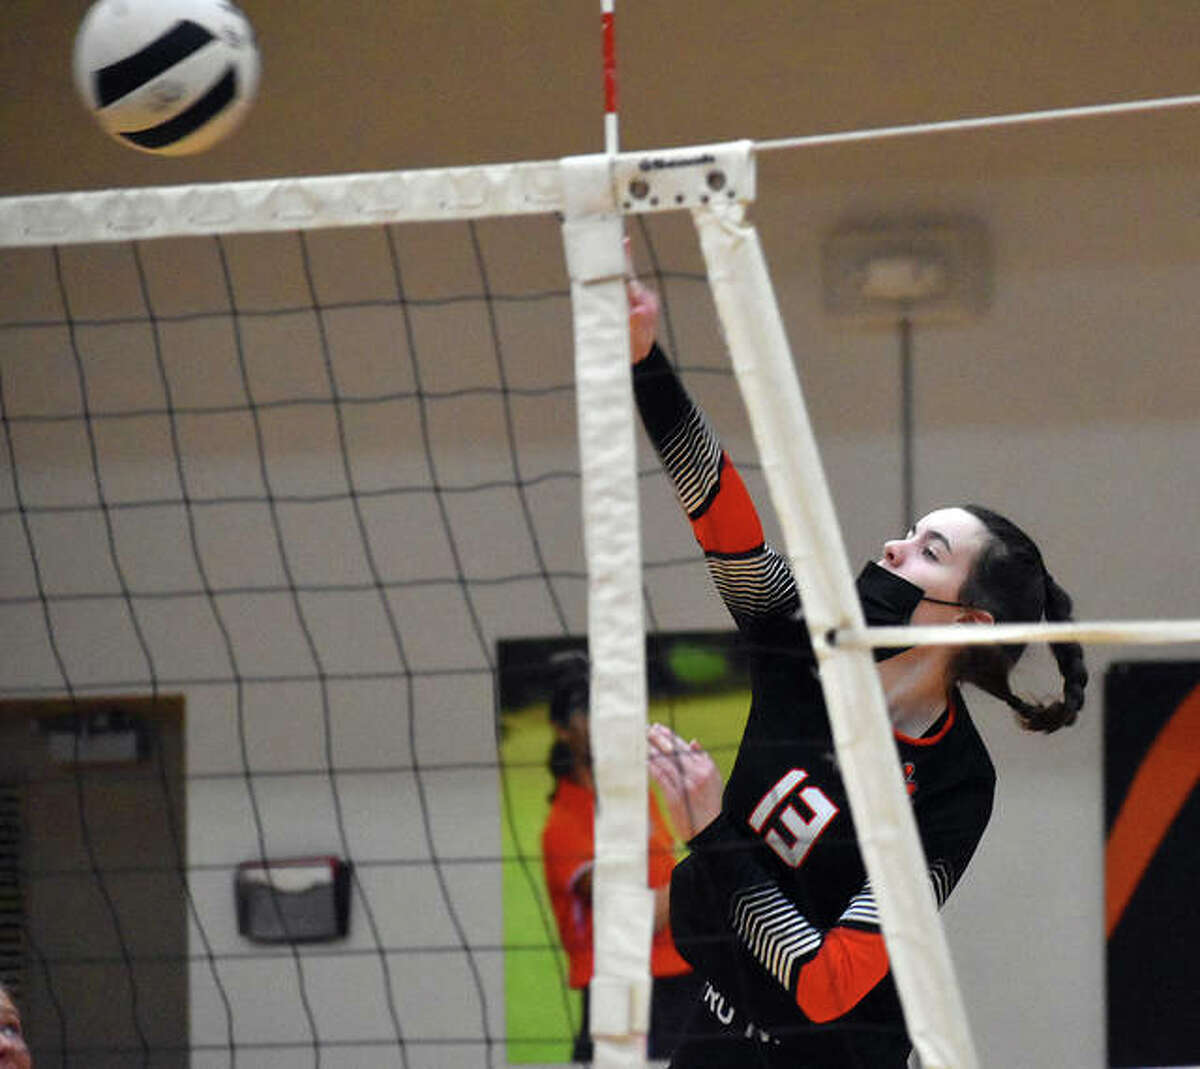 Edwardsville's Sydney Davis goes up for a kill during an SWC match last season against East St. Louis.